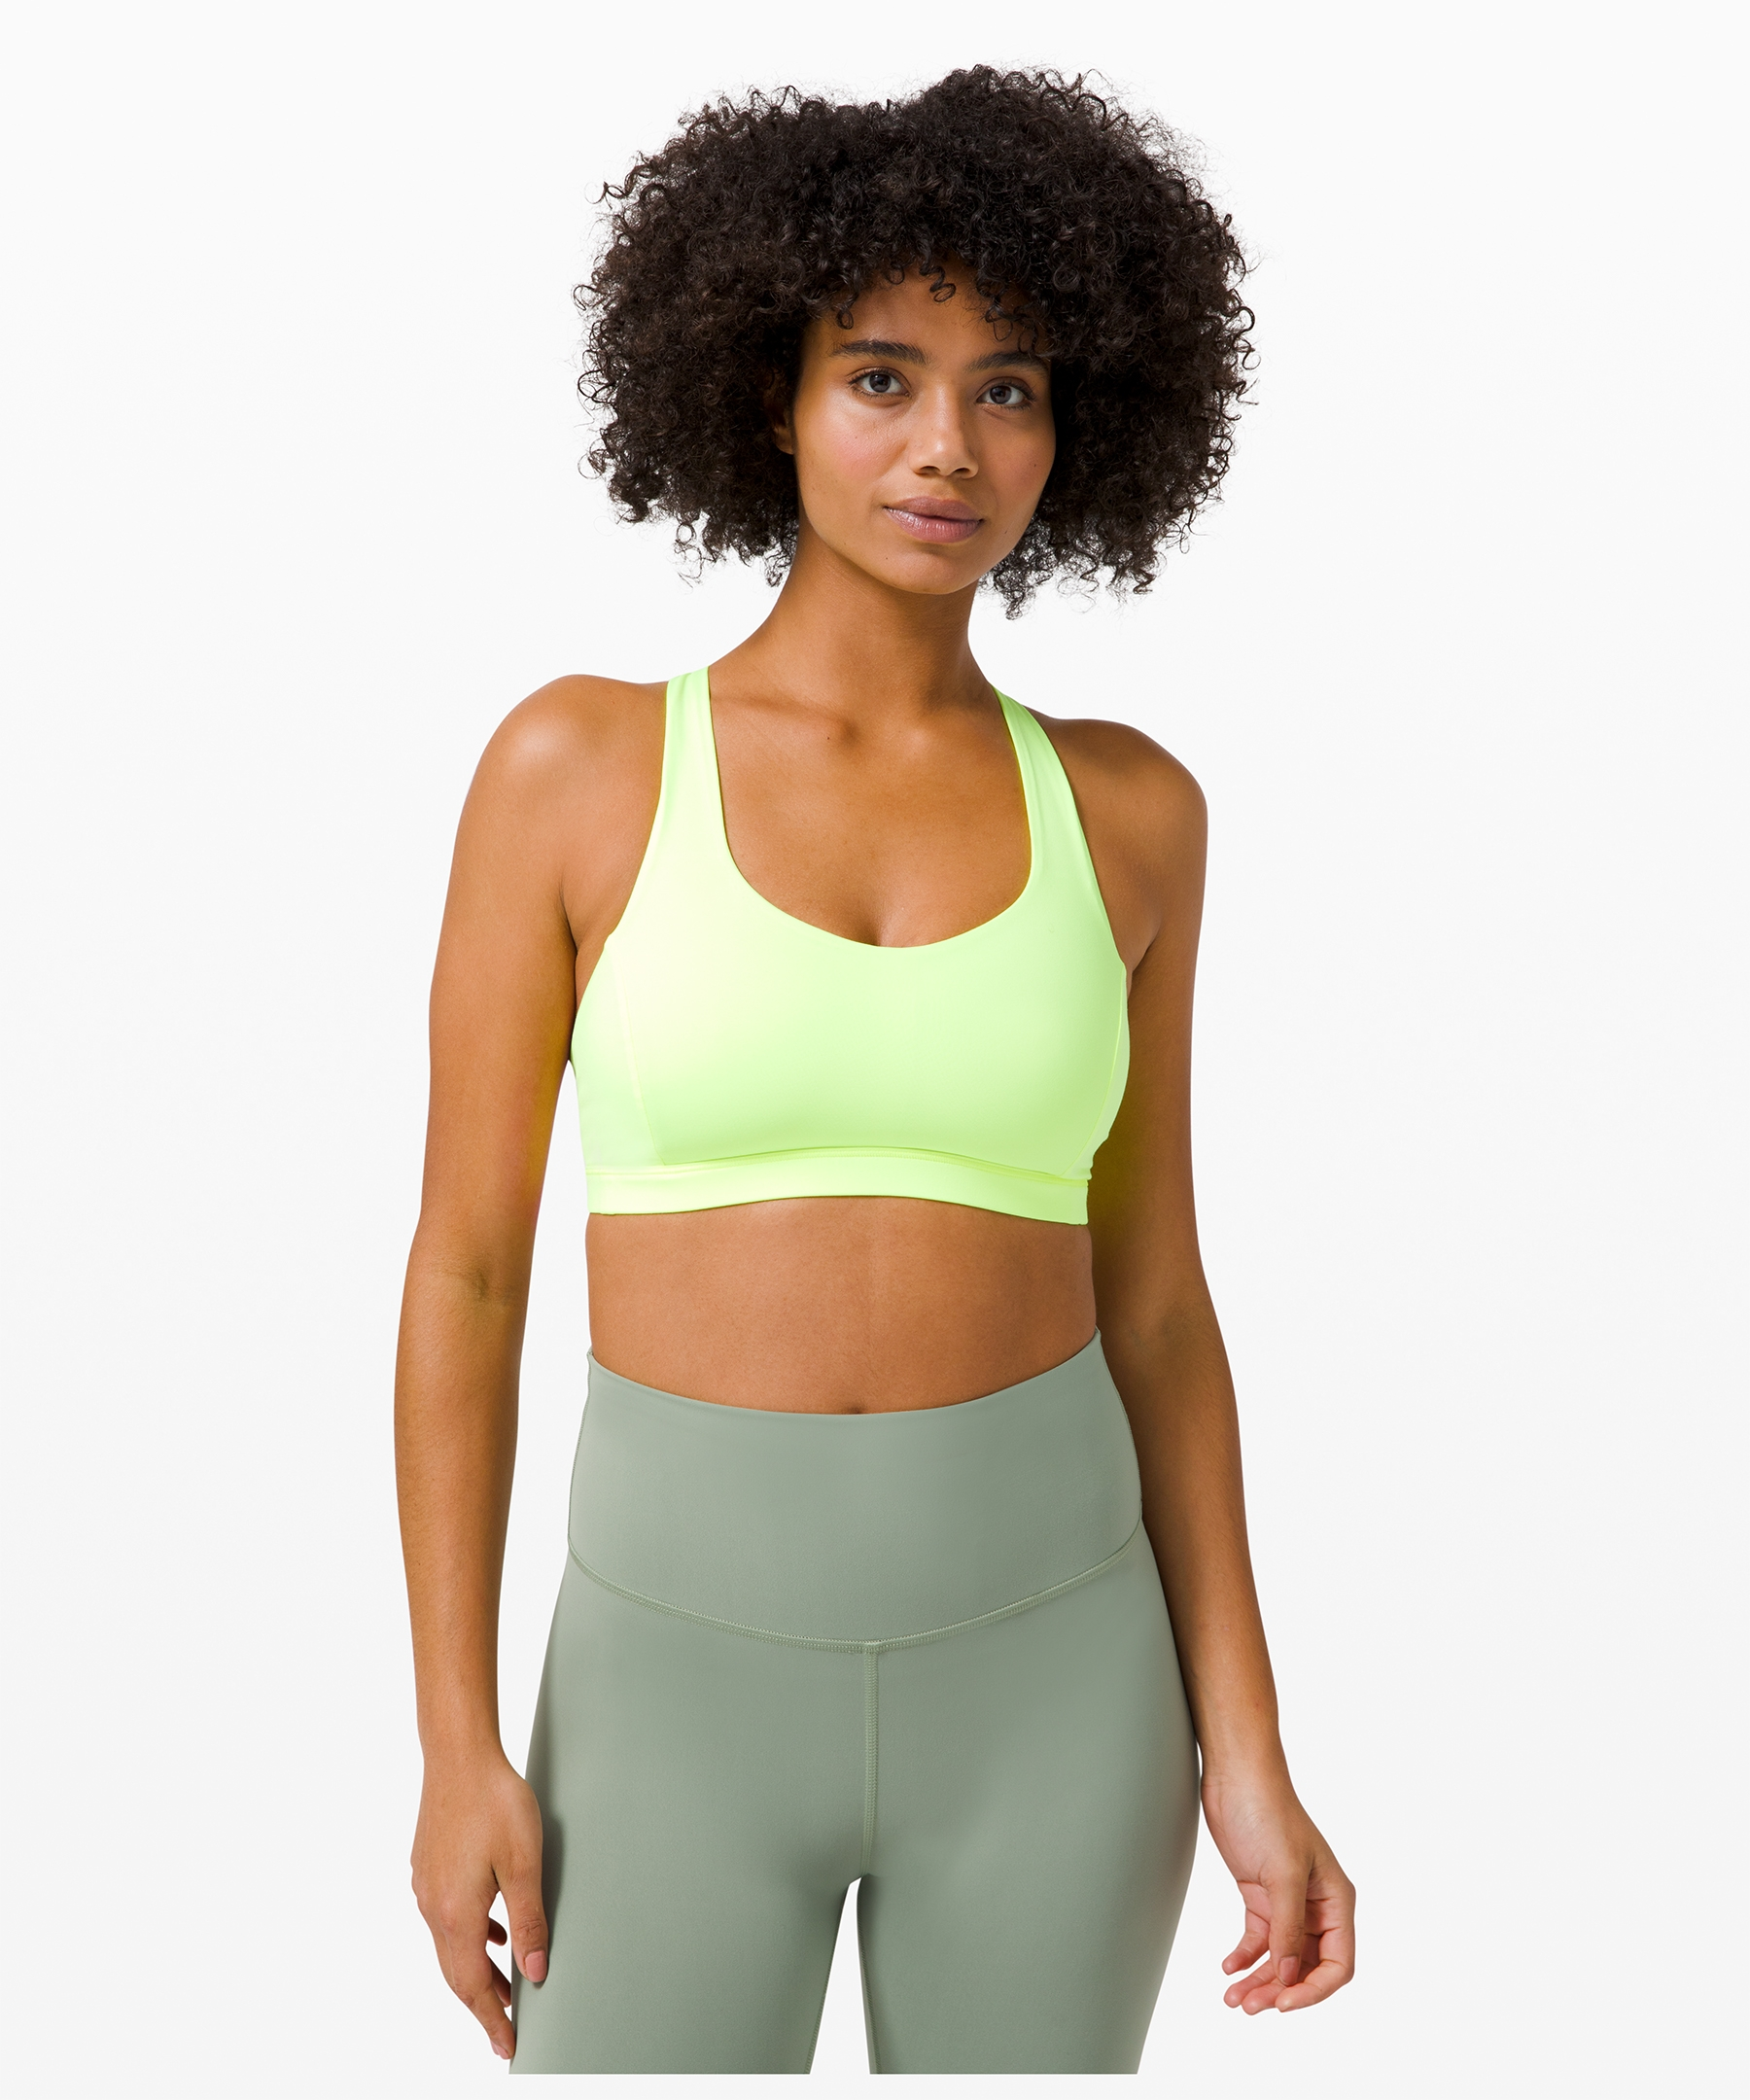 BROMEN Longline Sports Bra for Women Yoga Tank Top Padded Compression Fitness Running Workout Tops